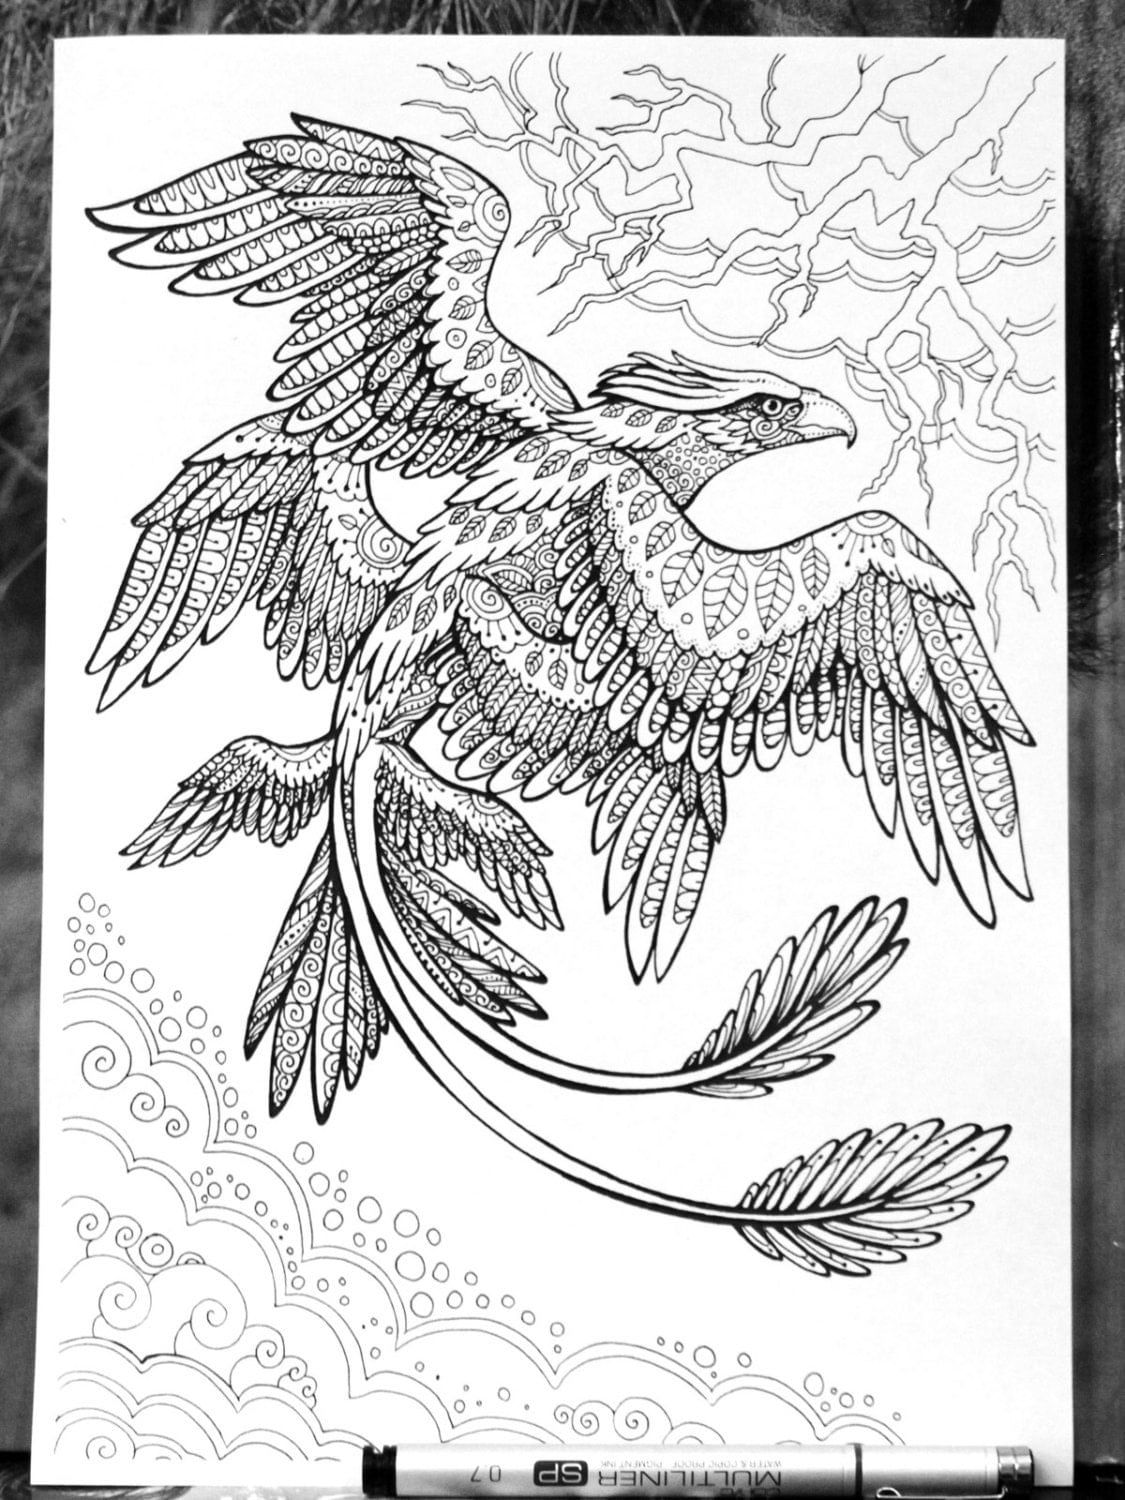 fantastic beasts coloring pages free | Frank the Thunderbird Fantastic Beasts Adult Coloring Page